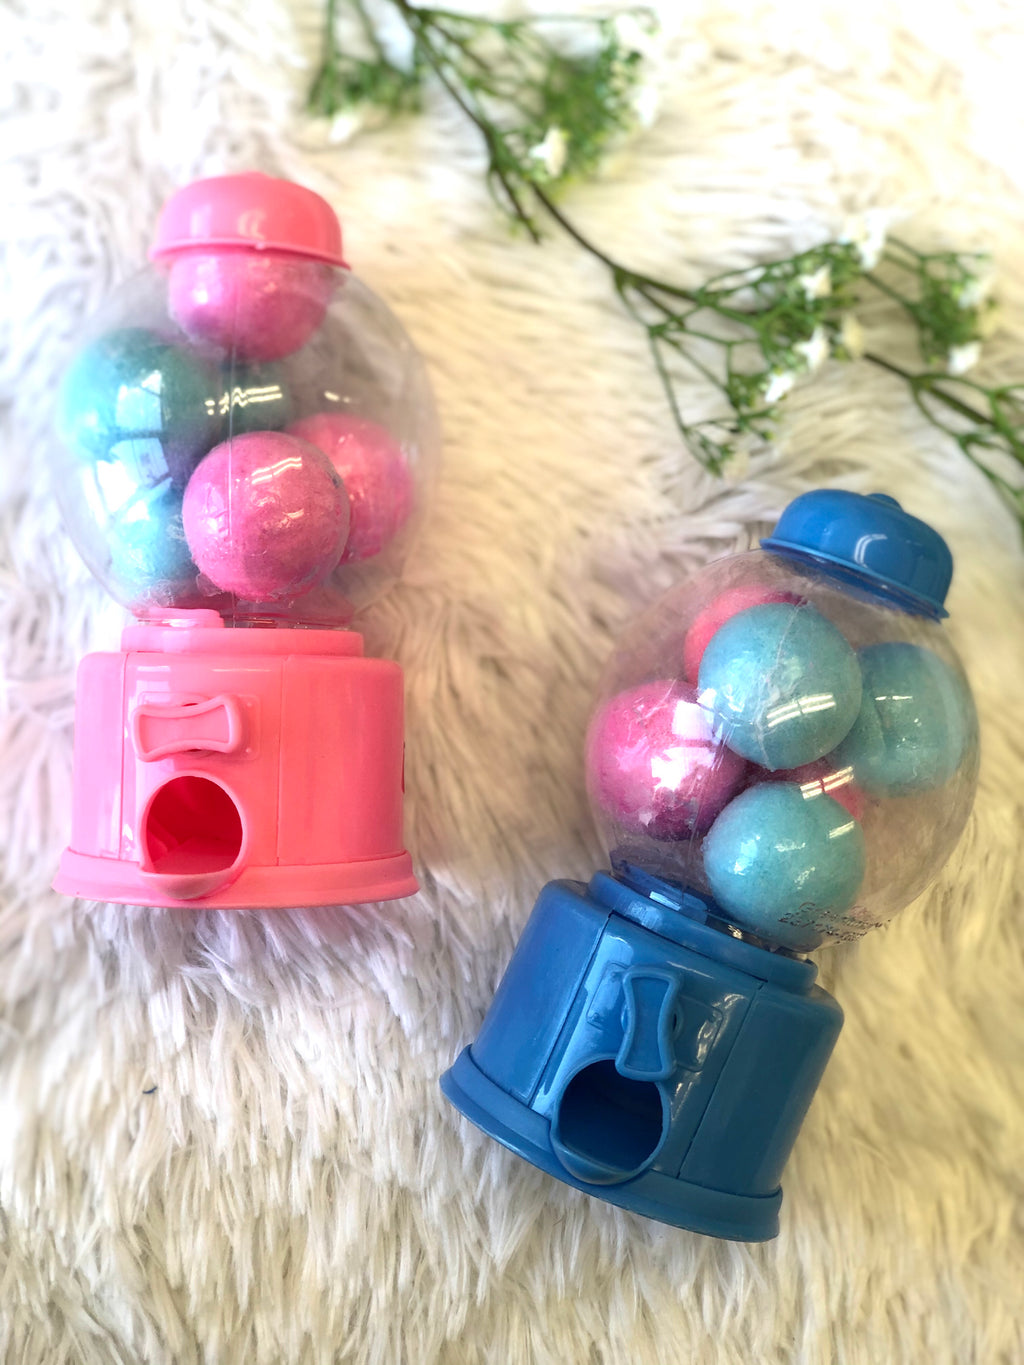 #529 Bathbomb Gumball Machine